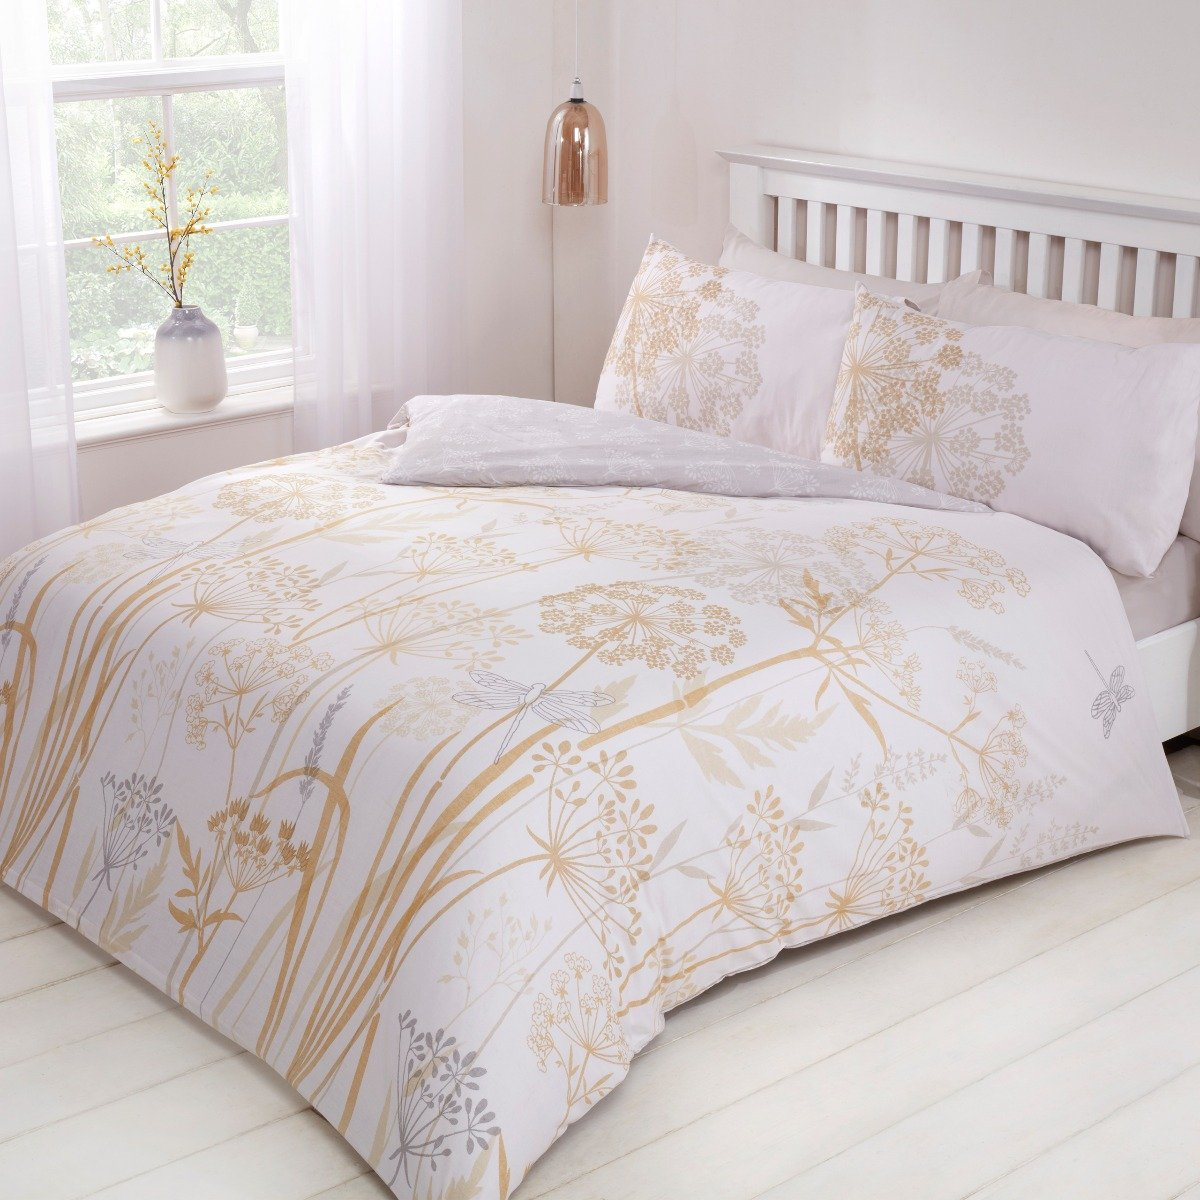 Country Meadow Bedding - Reversible Duvet Cover and Pillowcase Set